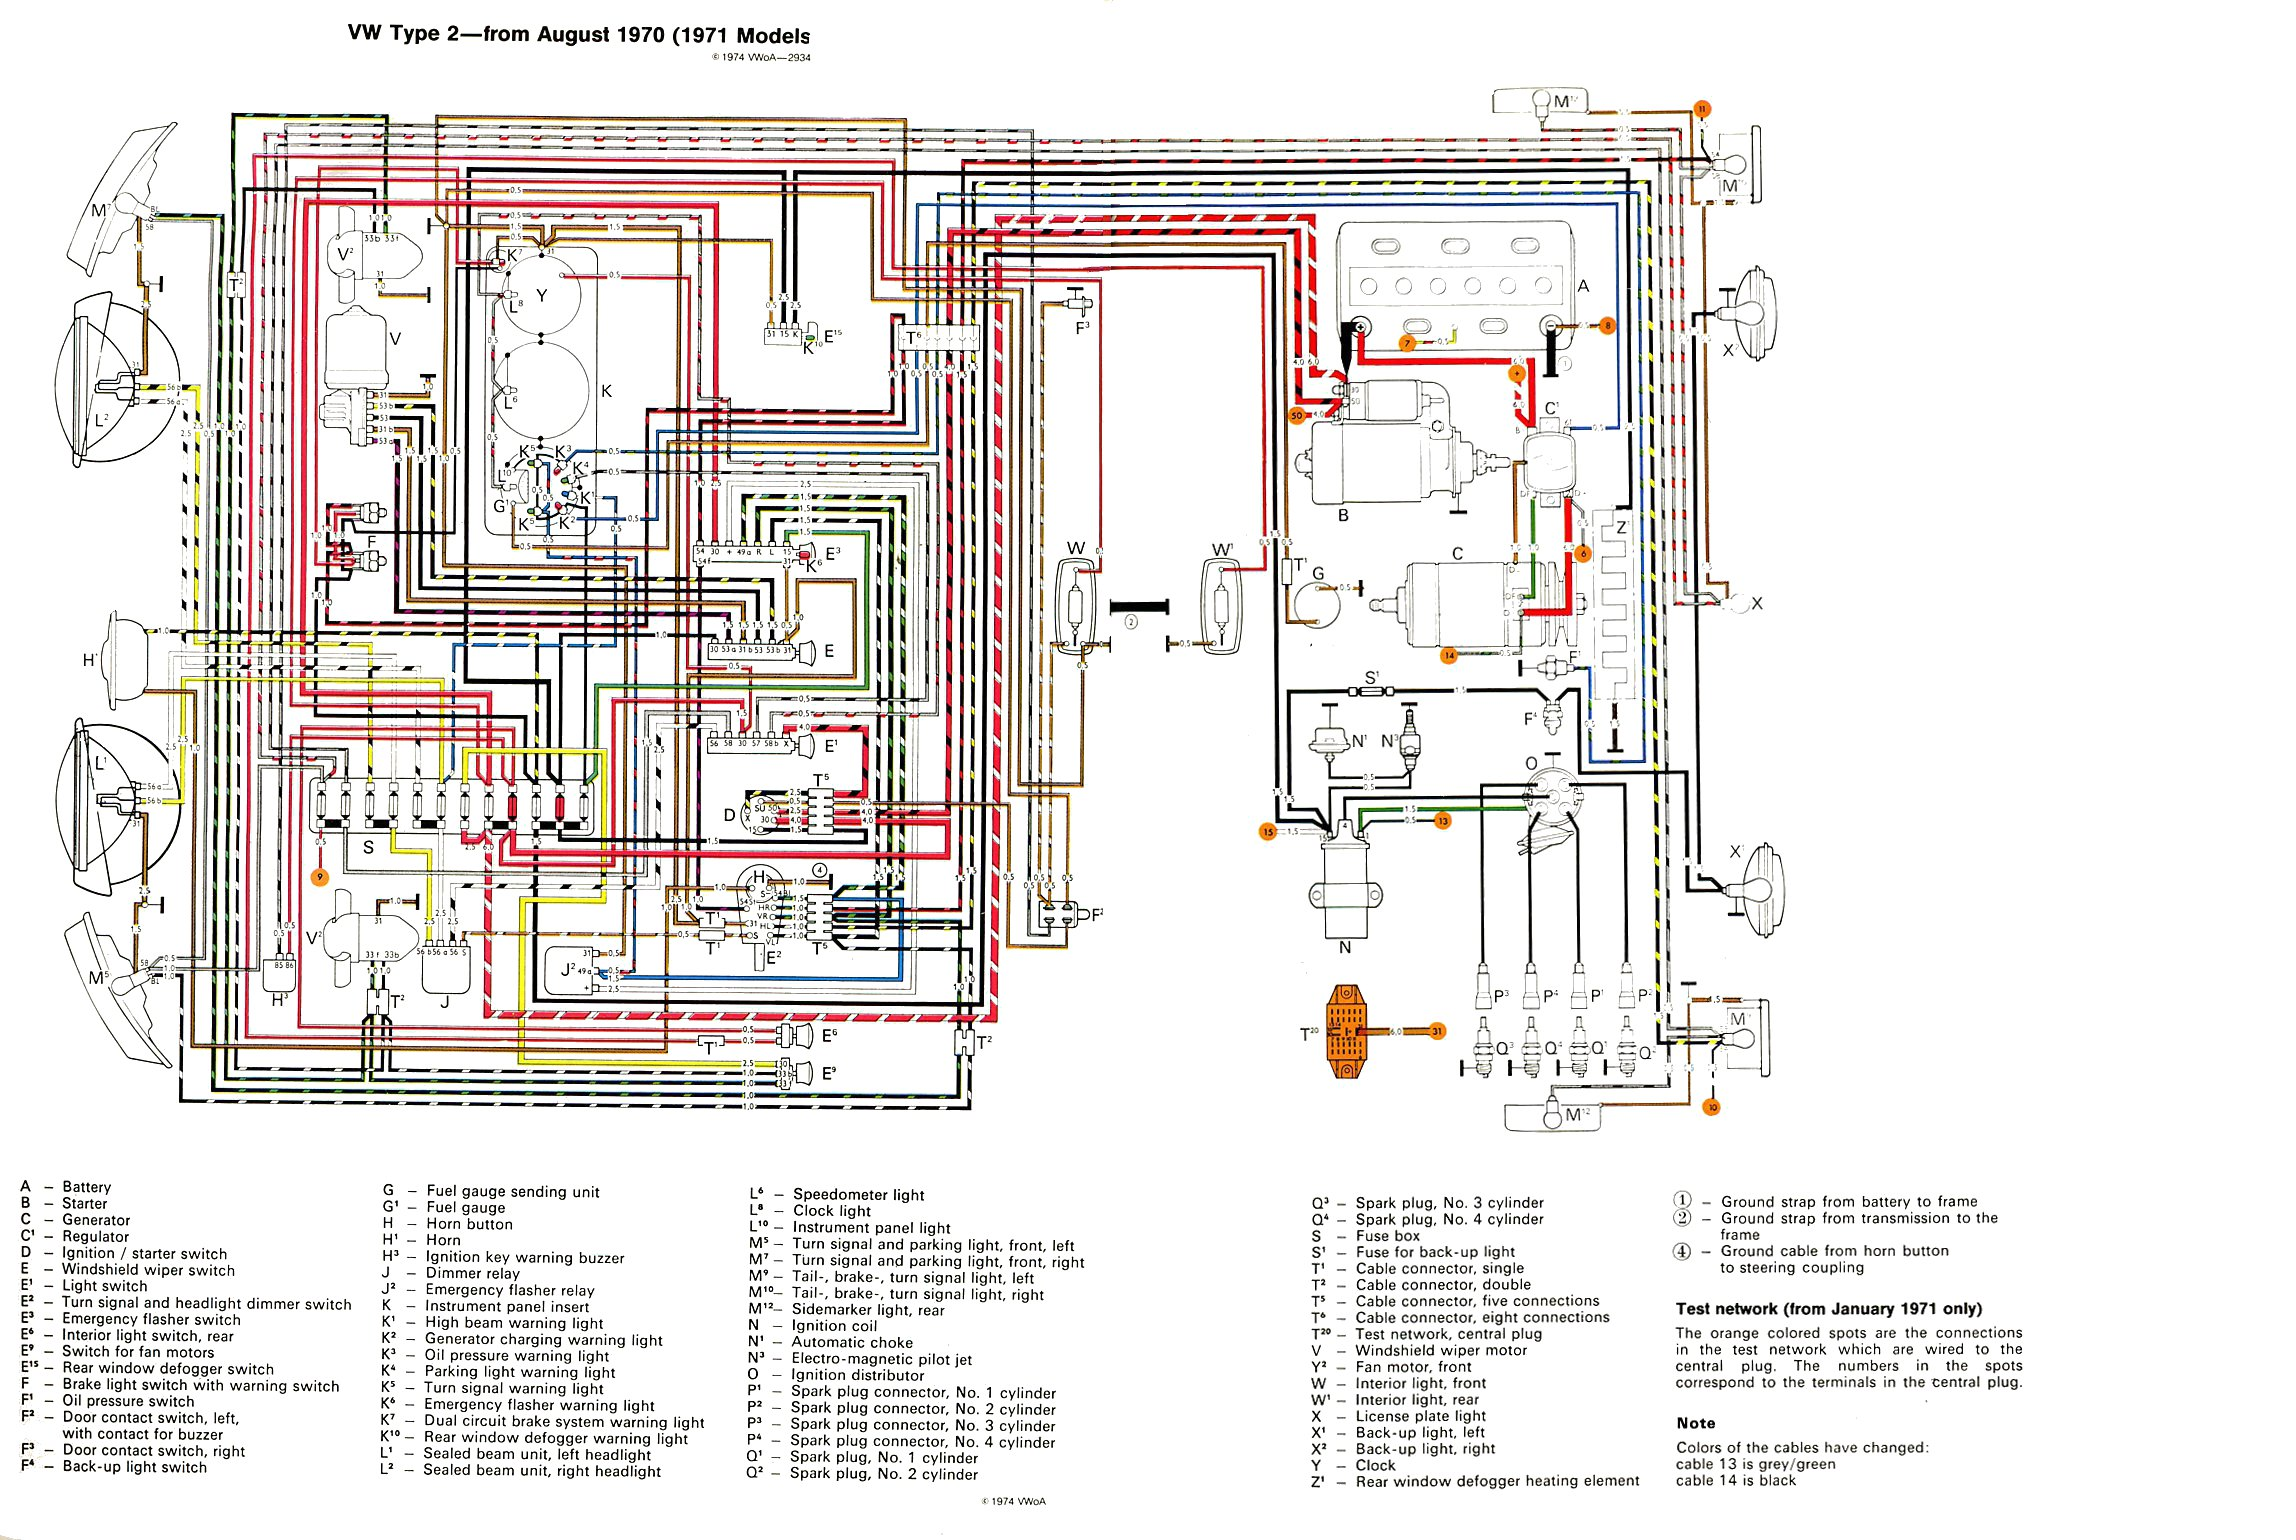 thesamba com type 2 wiring diagrams rh thesamba com 2011 VW Jetta Fuse  Diagram 2011 VW